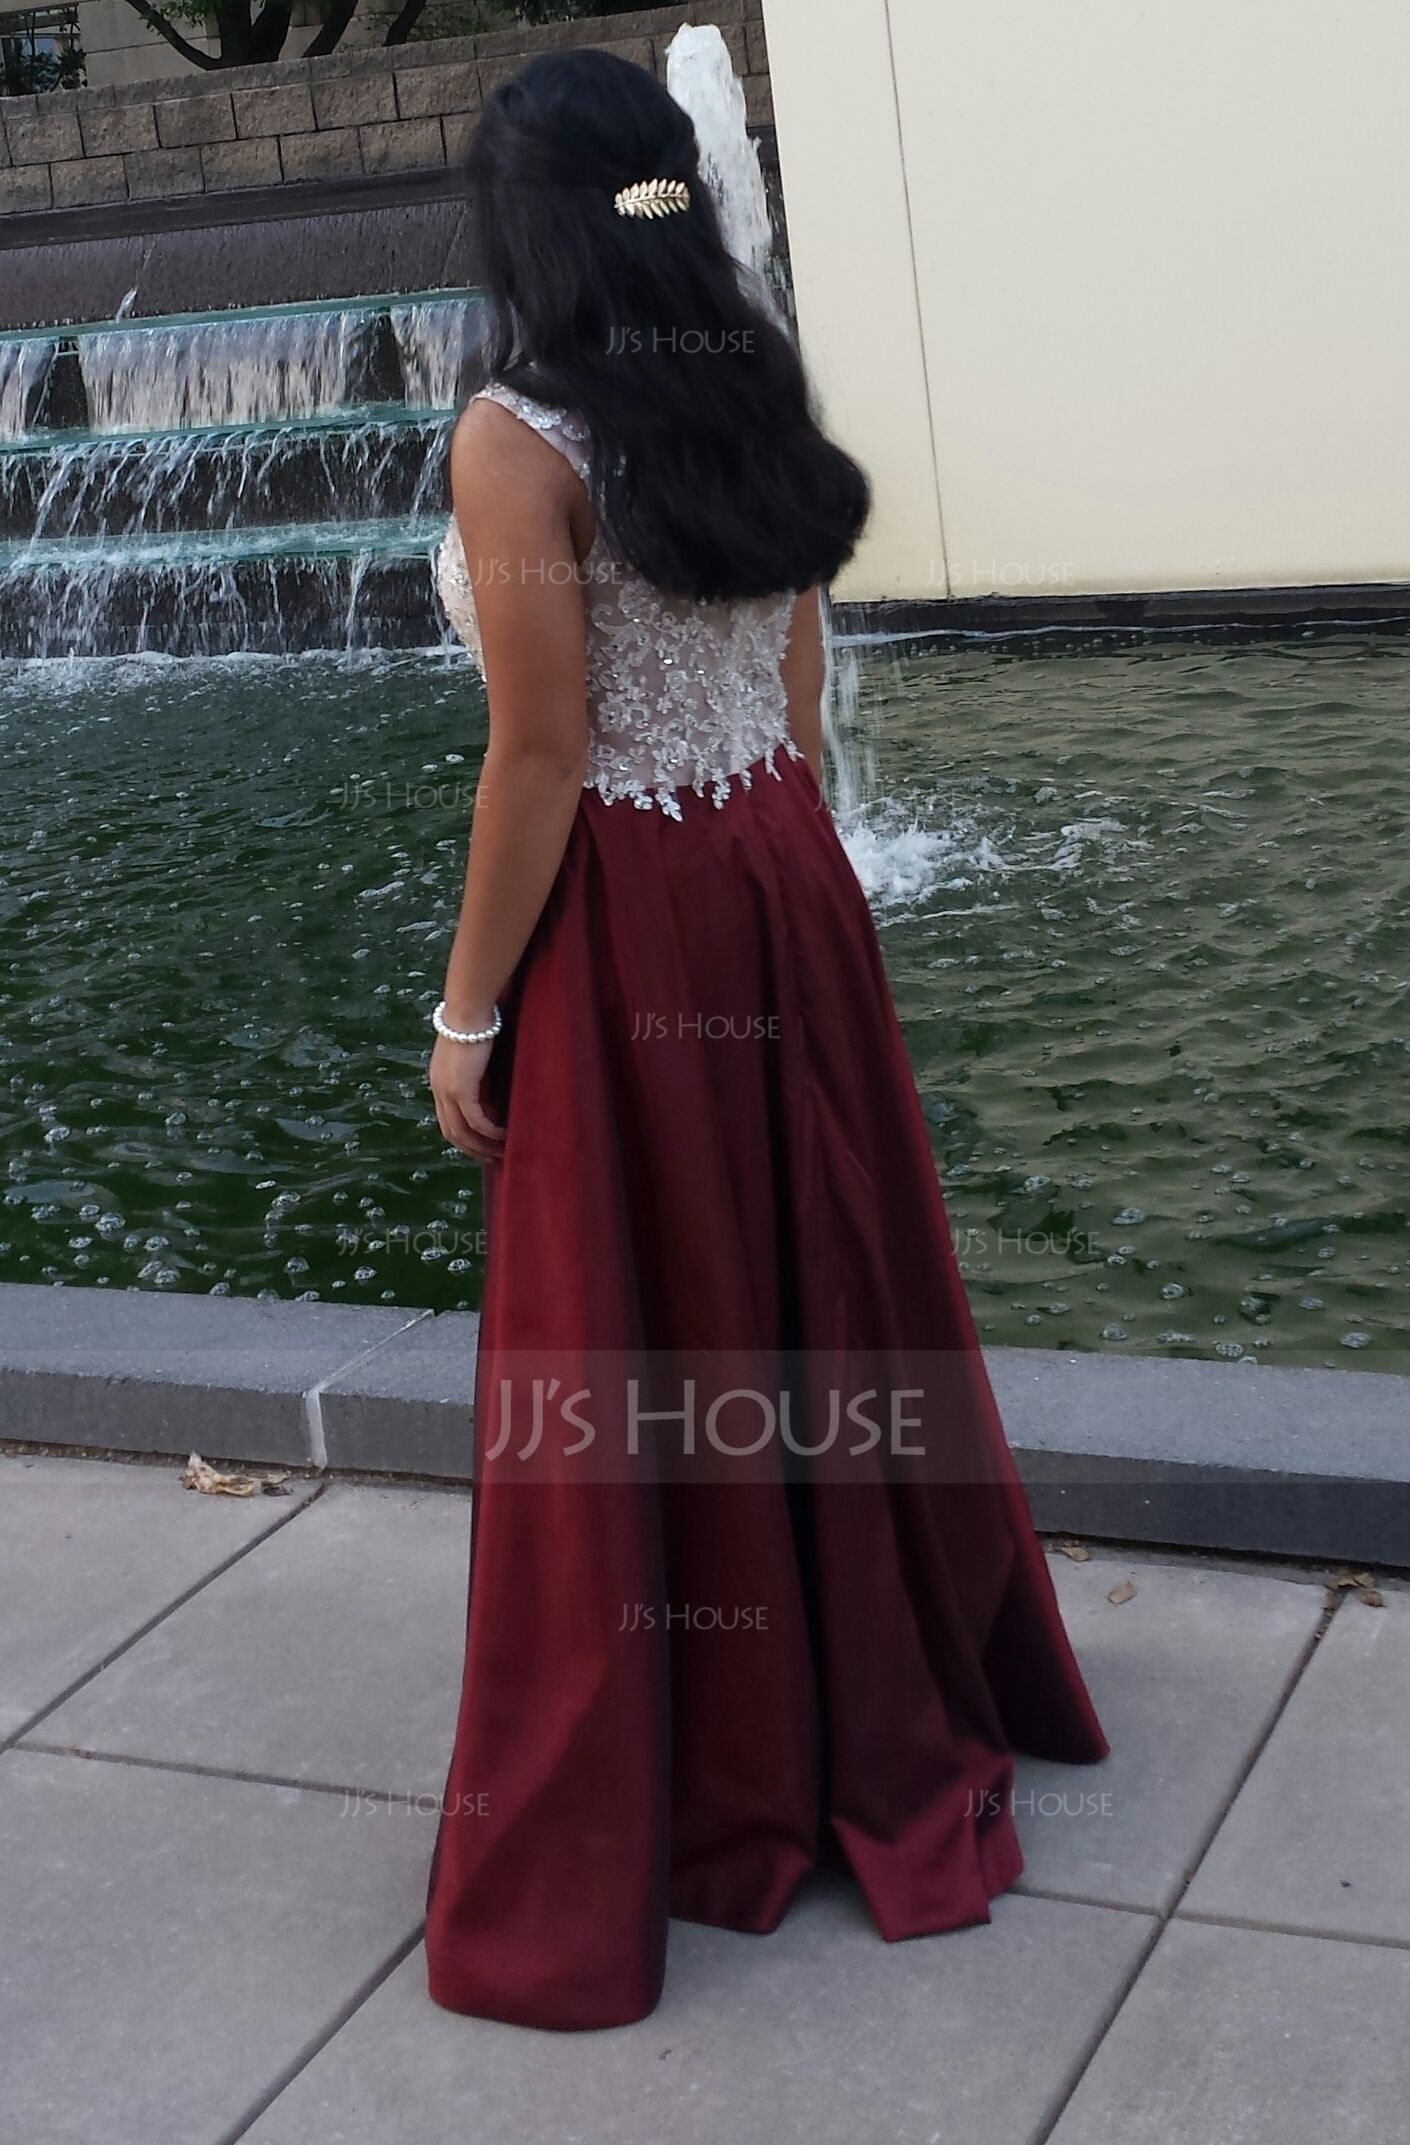 Ball-Gown Scoop Neck Floor-Length Taffeta Tulle Prom Dresses With Beading Appliques Lace Sequins (018075858)